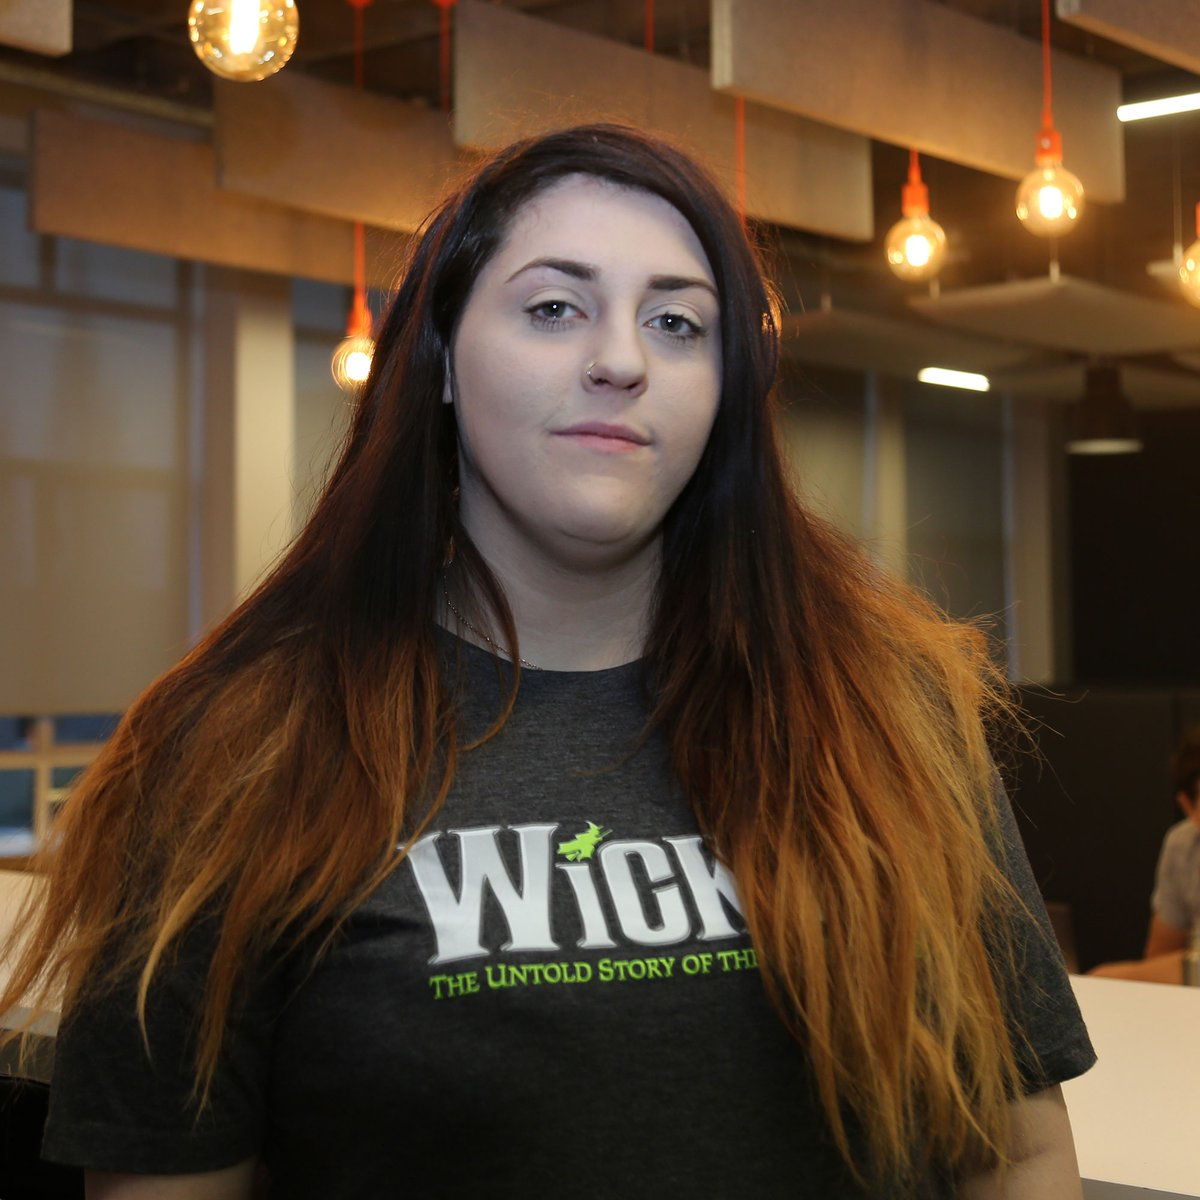 """""""Becoming a student ambassador has helped me greatly with my confidence and has helped me meet lots of amazing people that I might not have otherwise, said Lauren. Id highly recommend becoming a student ambassador if you can!"""" You can apply here: socsi.in/sF0QH #wgu4u"""